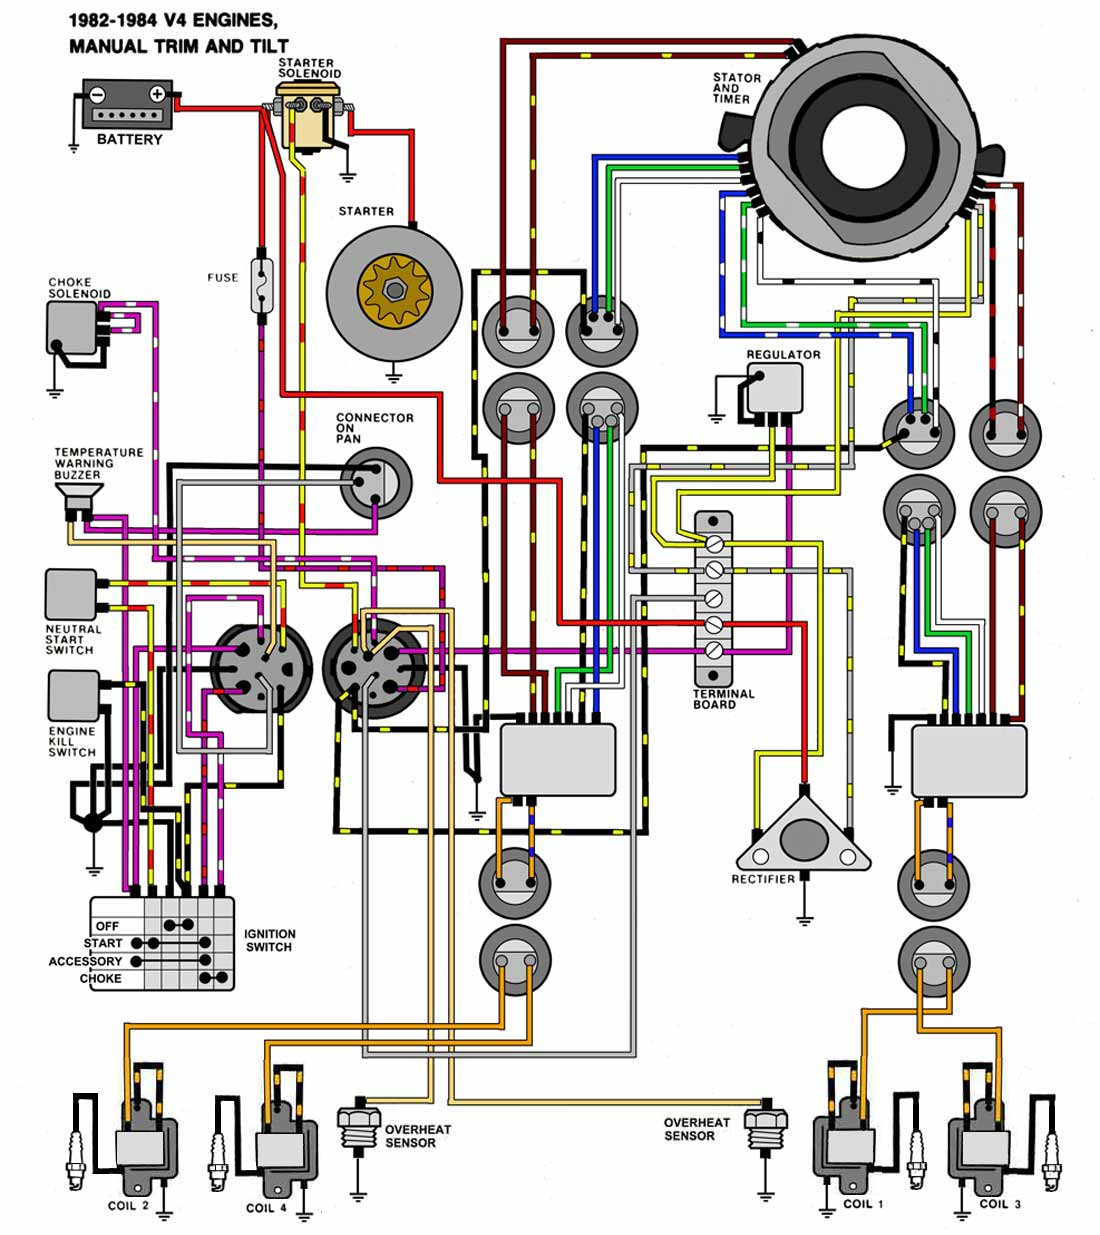 82_84_V4_NOTNT mastertech marine evinrude johnson outboard wiring diagrams evinrude wiring diagram at bayanpartner.co